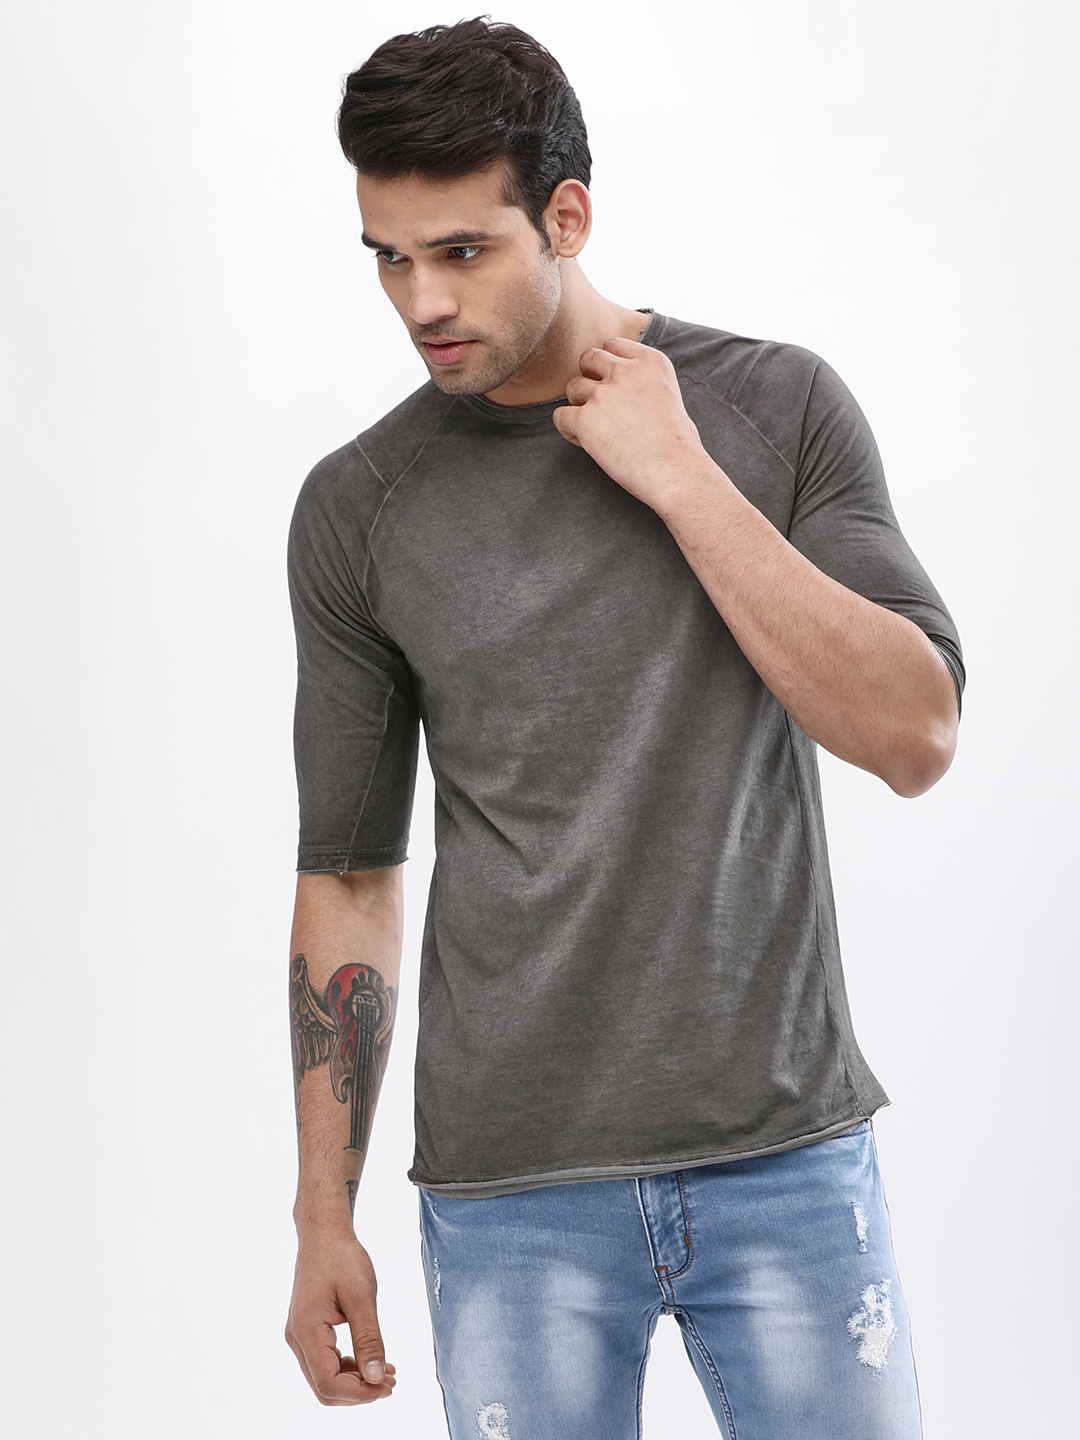 Blue Saint Steel Grey Crew Neck Raglan T-Shirt 1